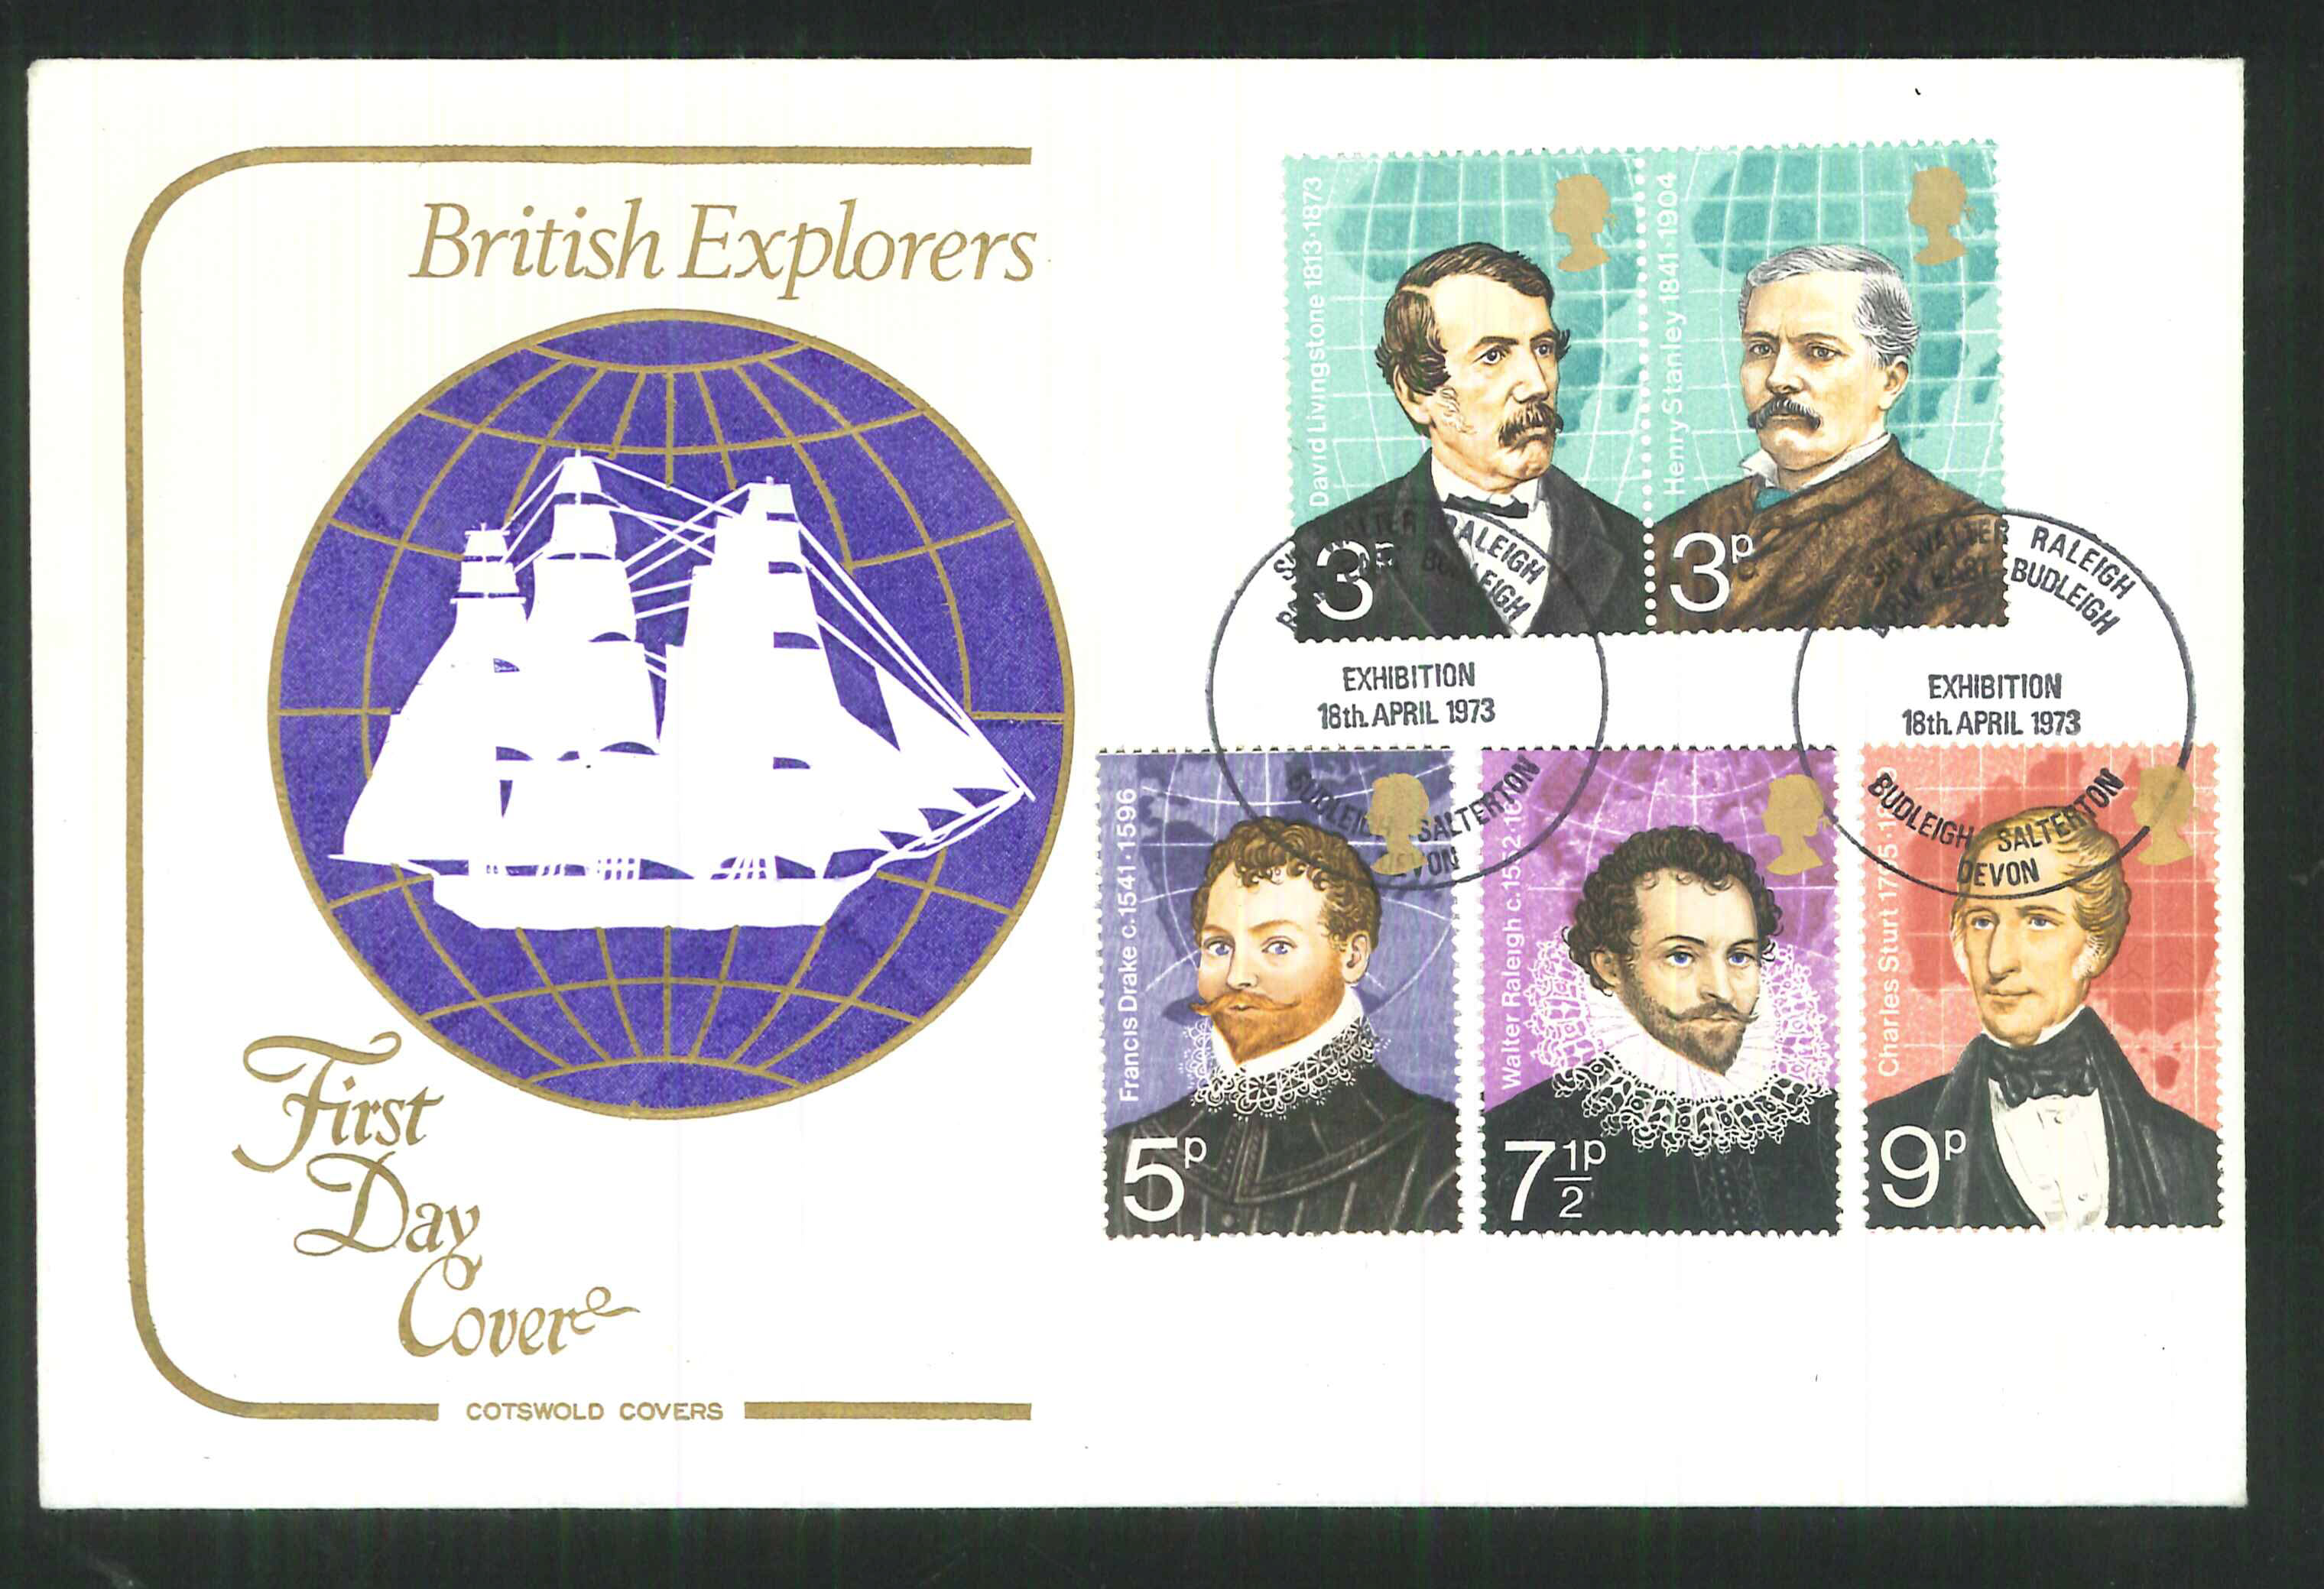 1973 Cotswold British Explorers FDC Cardiff Postmark